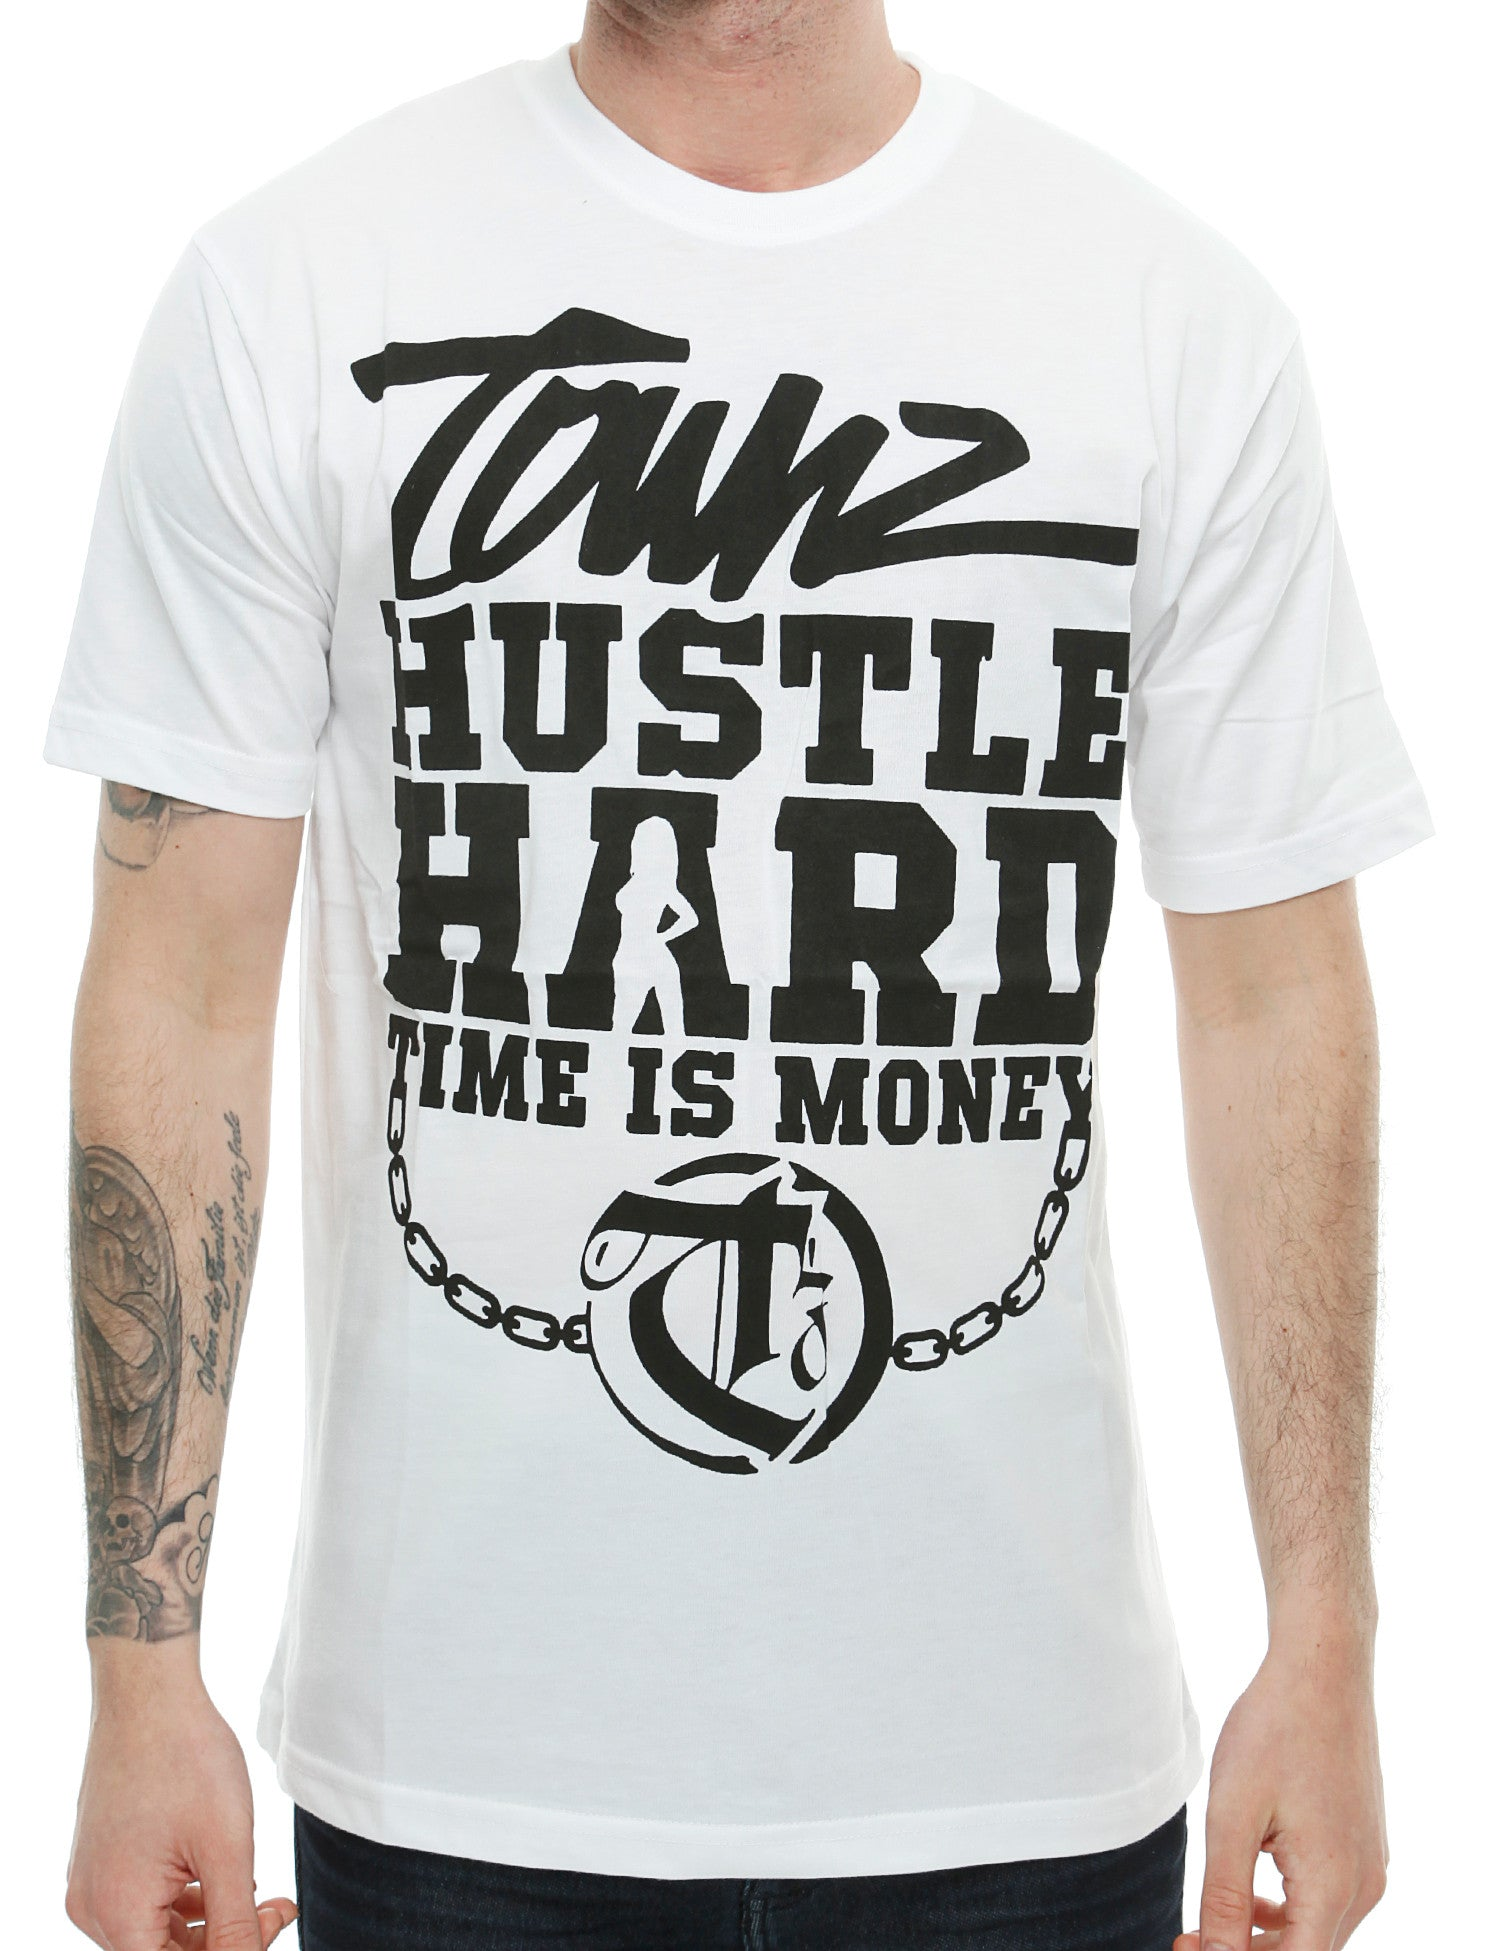 Townz Hustle Hard T-Shirt TNZ16-002 White